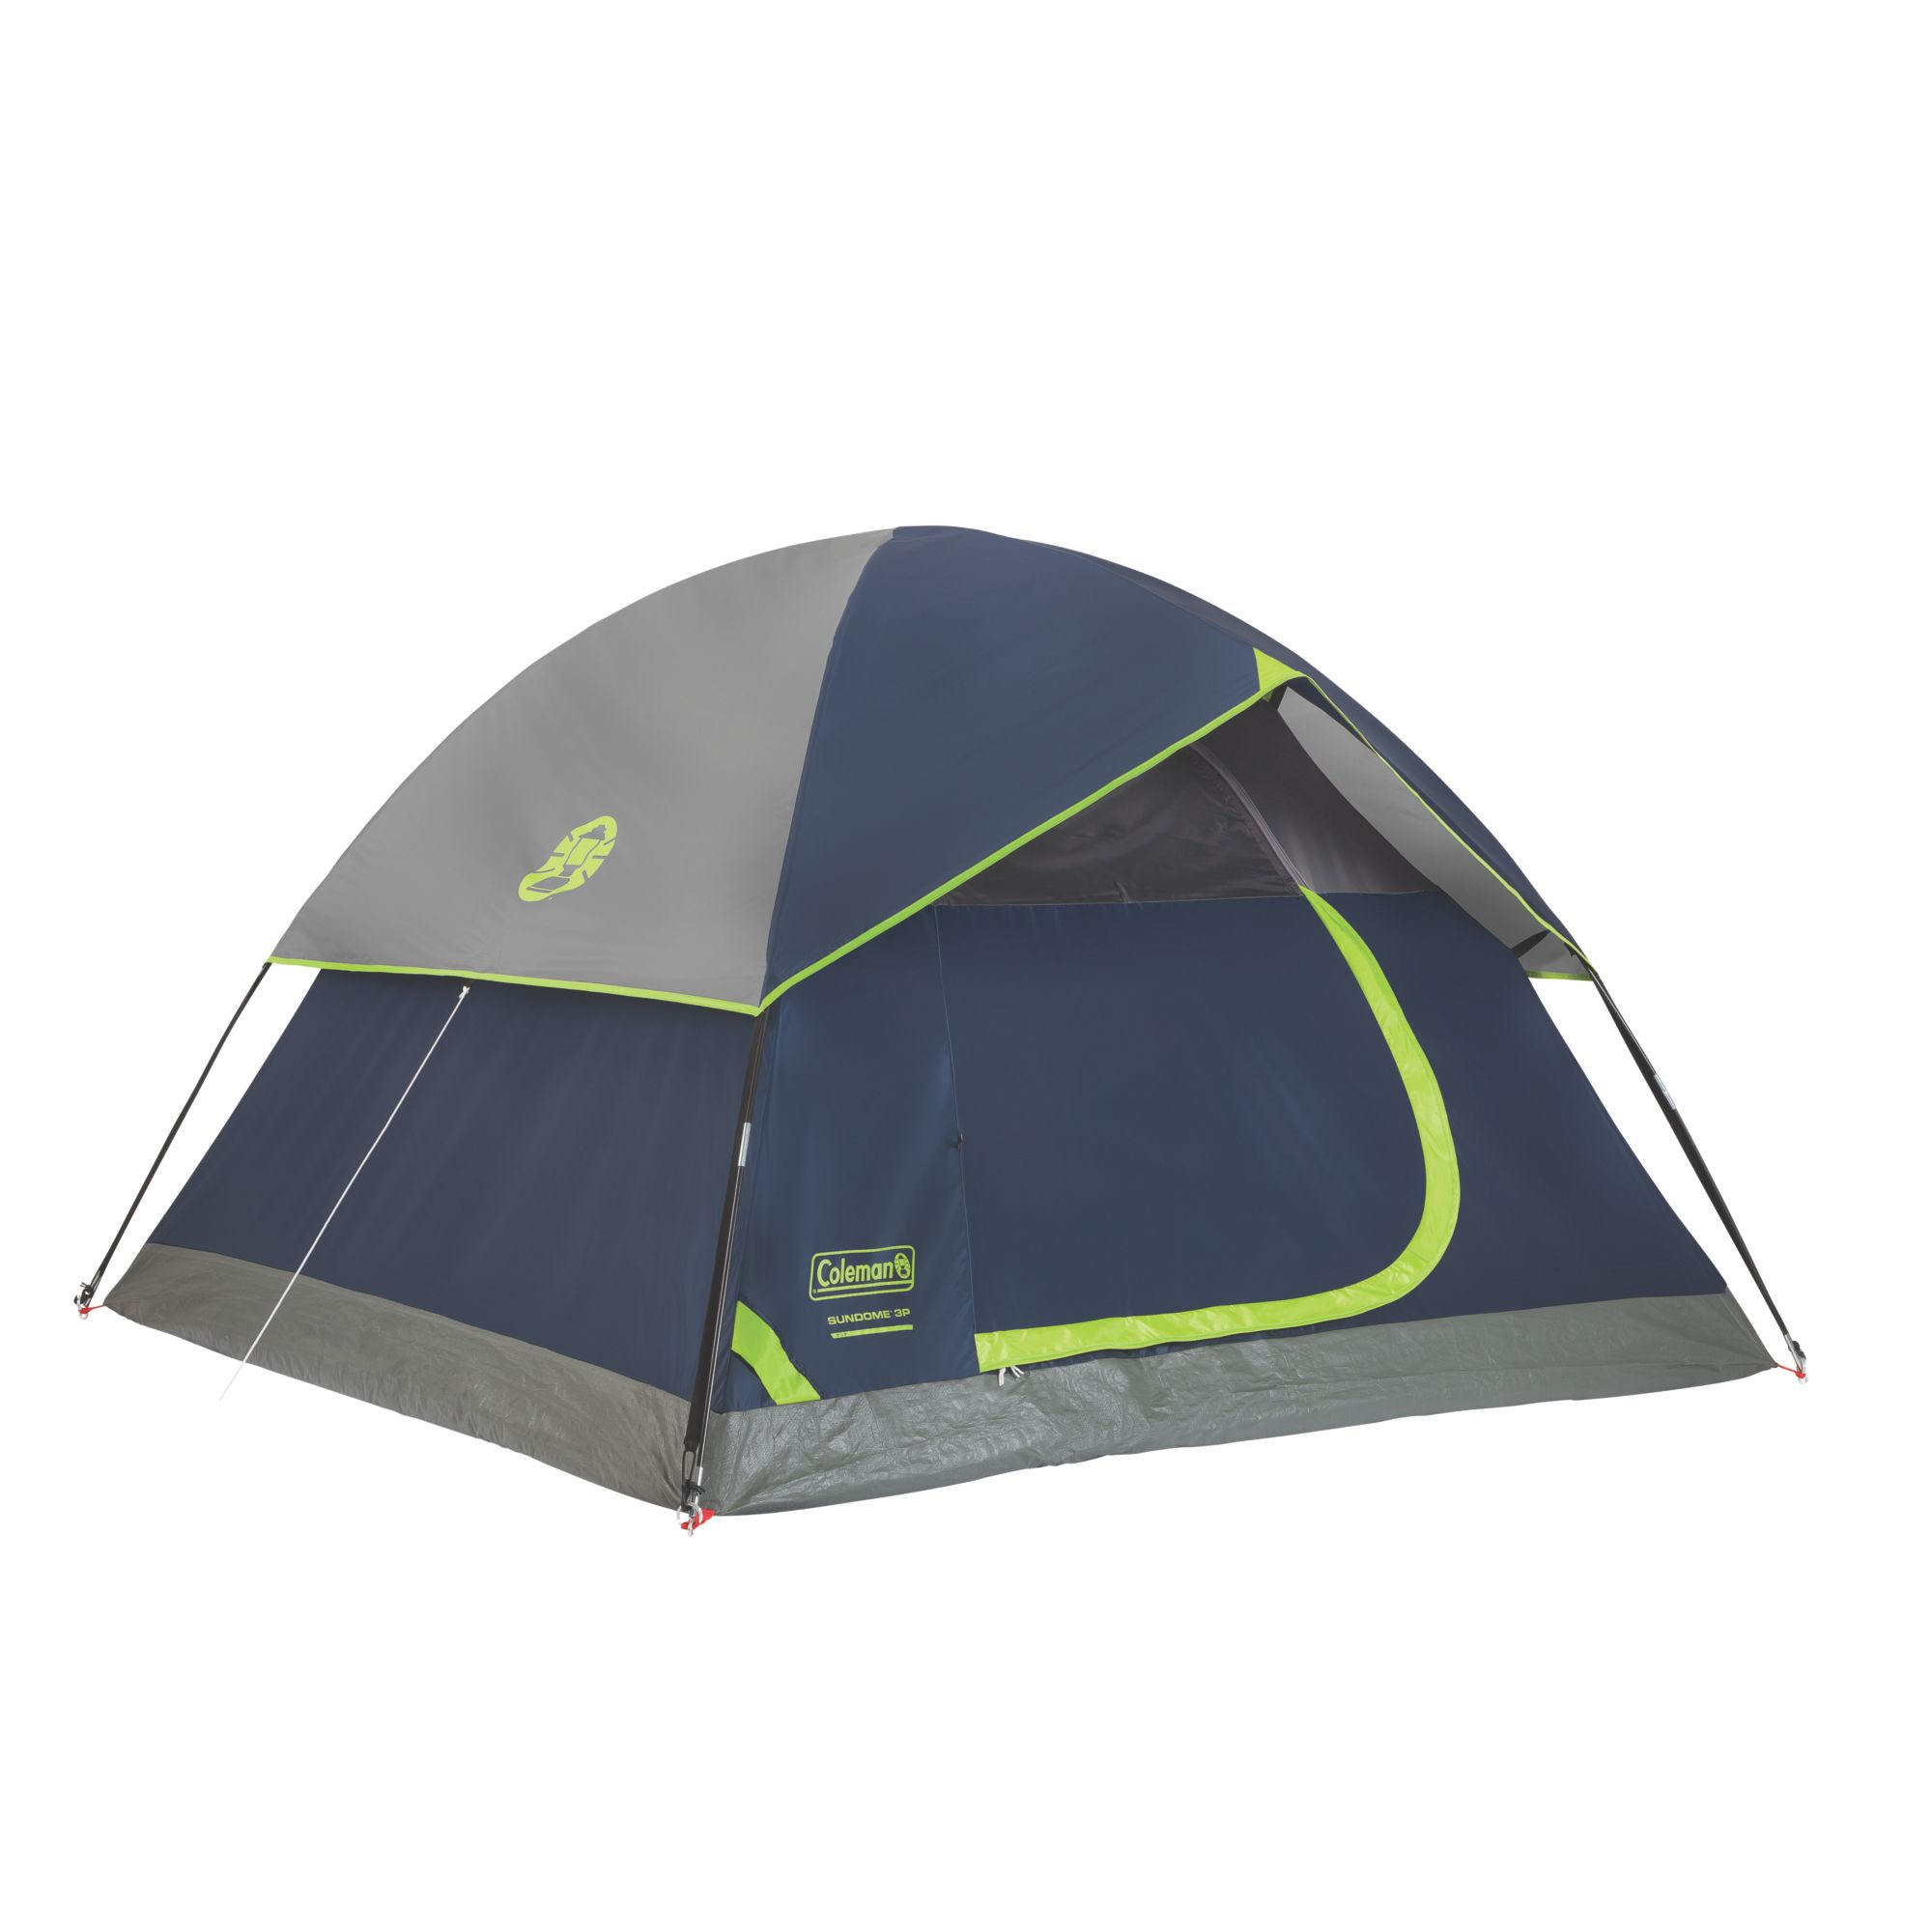 Sundome 3 Person Dome Tent Coleman